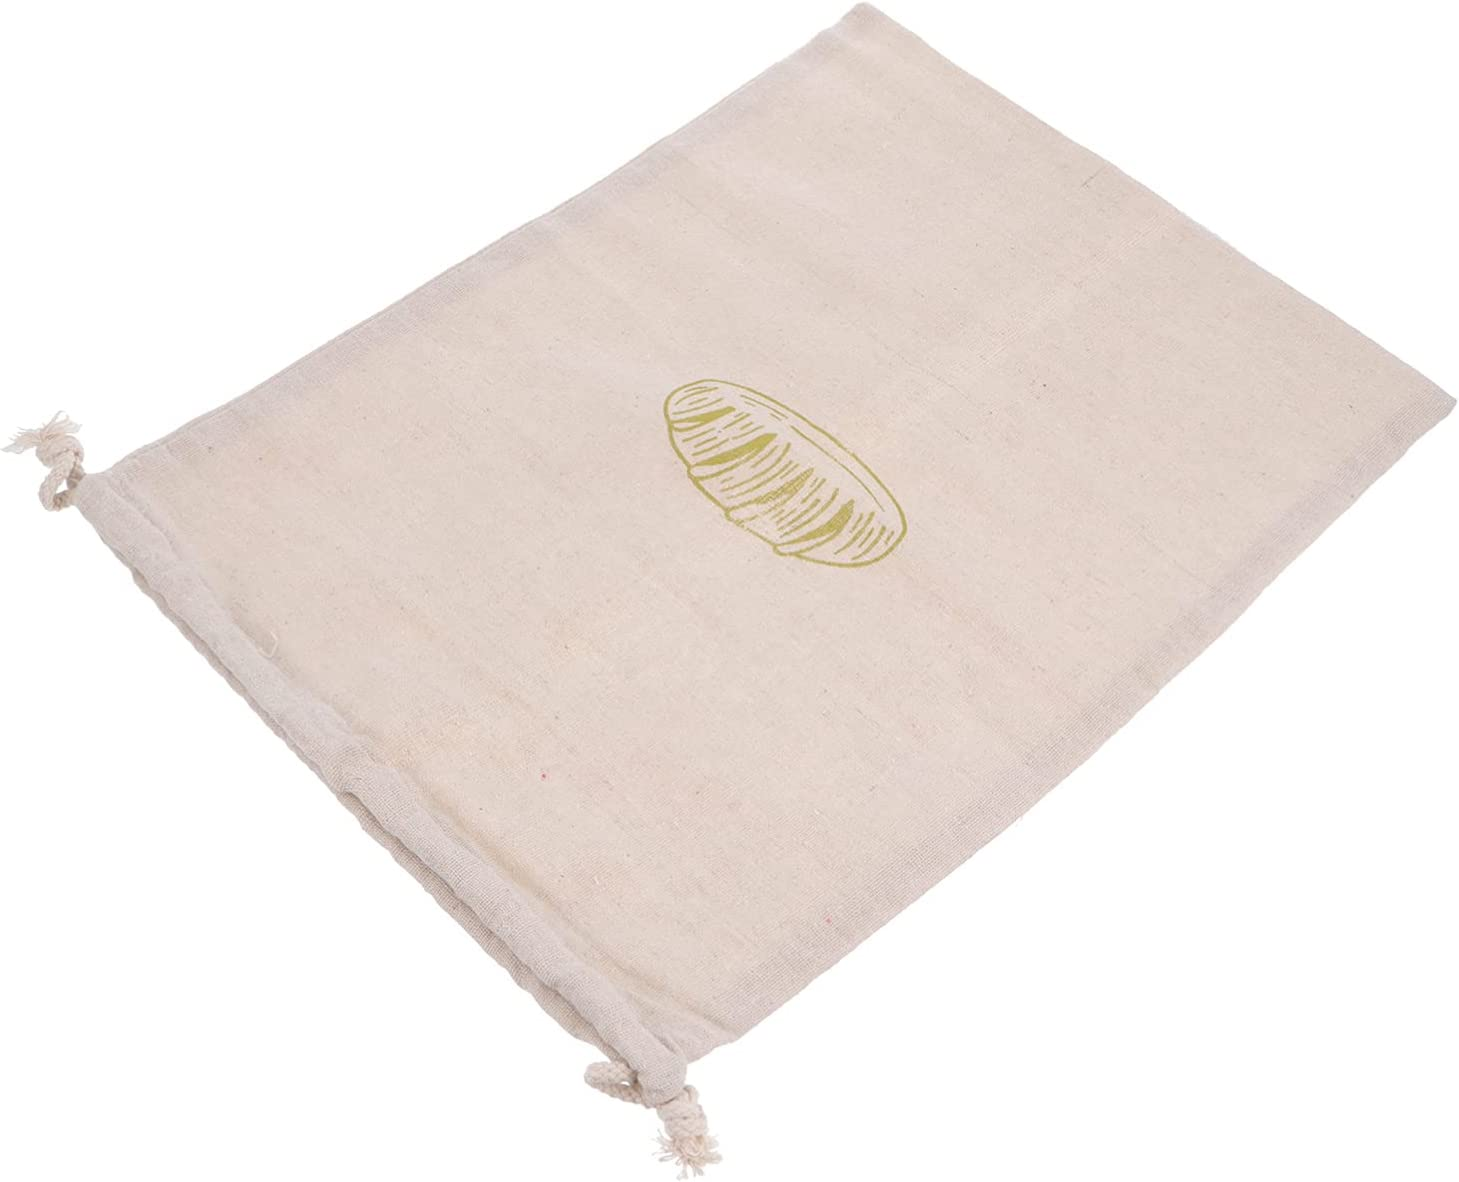 Luxshiny Natural Produce Bags 1 year warranty Linen Bread Fresno Mall Drawstring Bag S